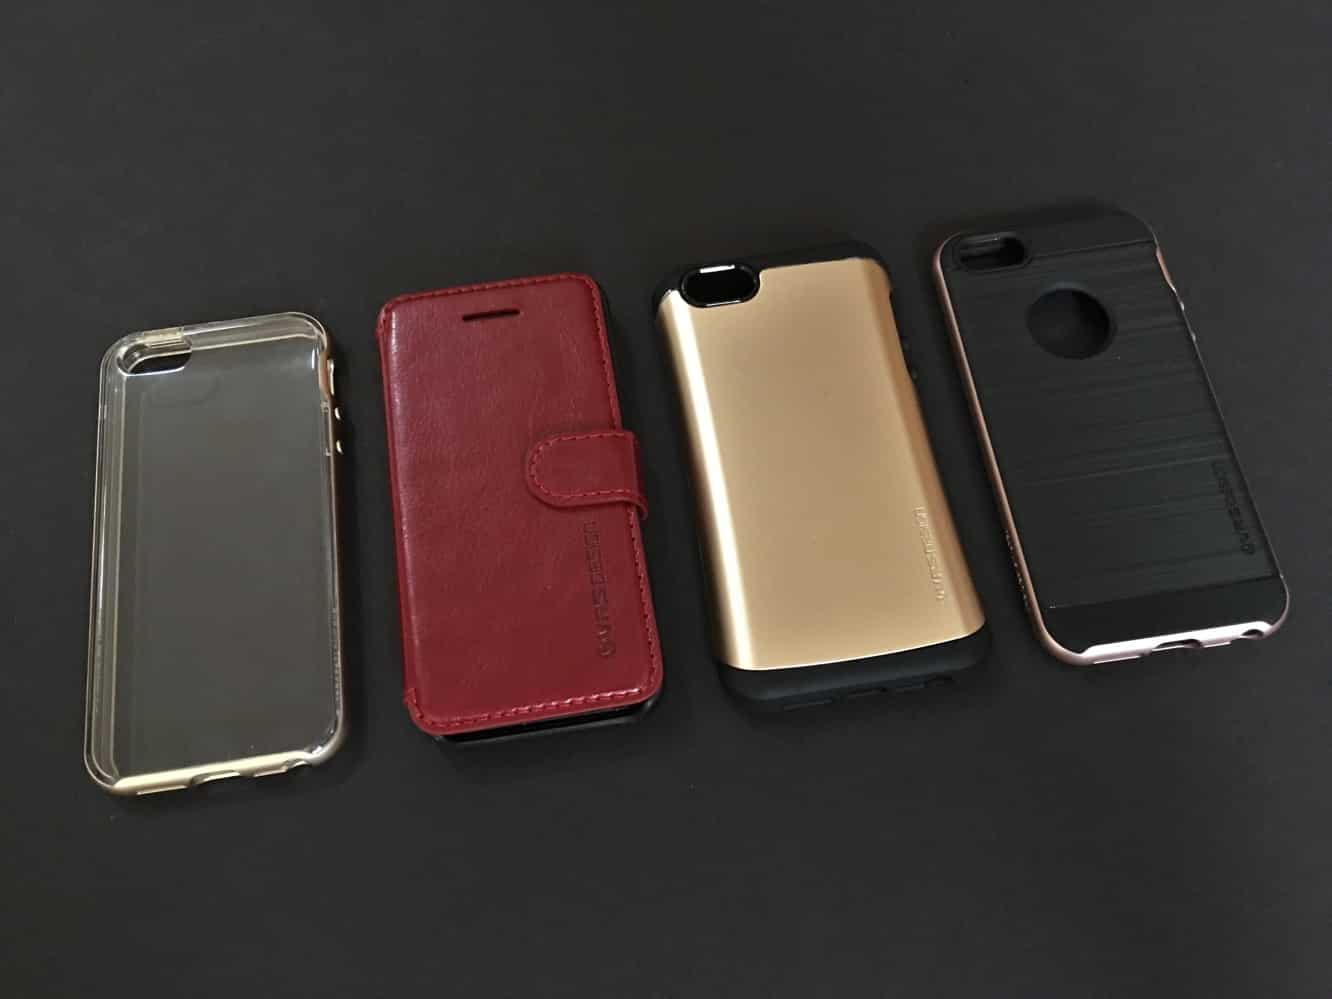 Review: VRS Design Crystal Bumper, High Pro Shield, Layered Dandy + Thor for iPhone SE